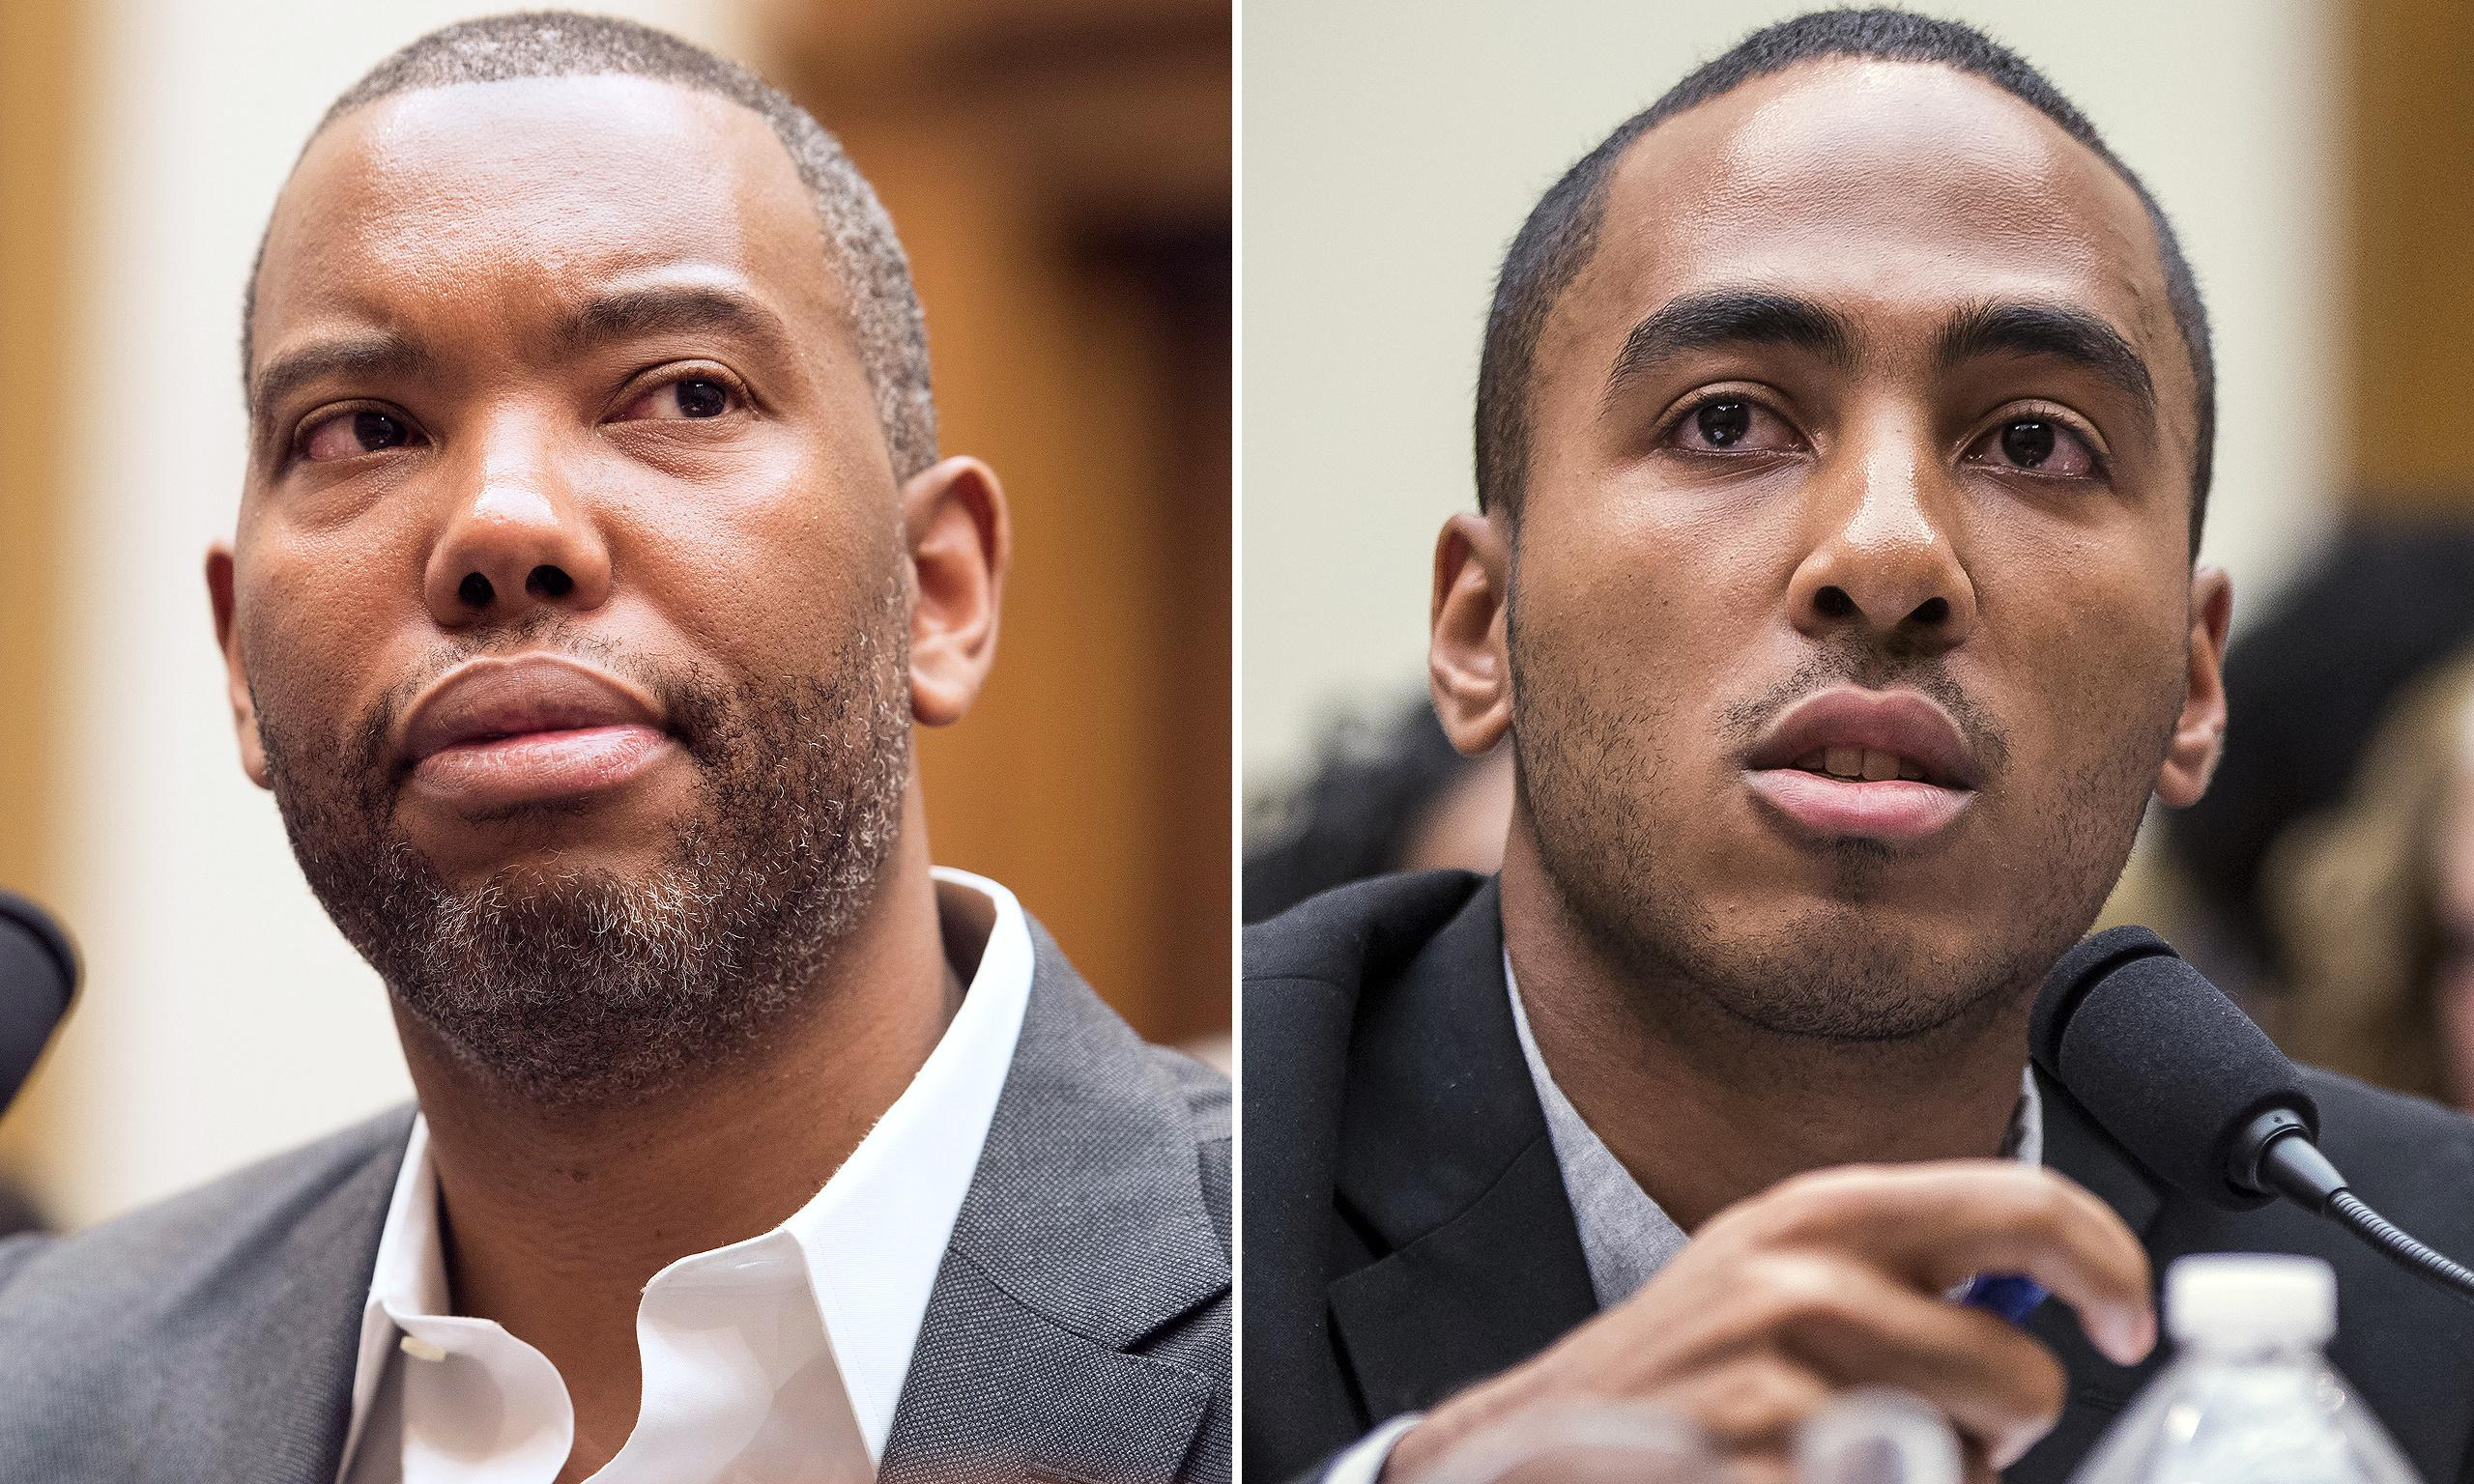 Should America pay reparations for slavery? Ta-Nehisi Coates v Coleman Hughes